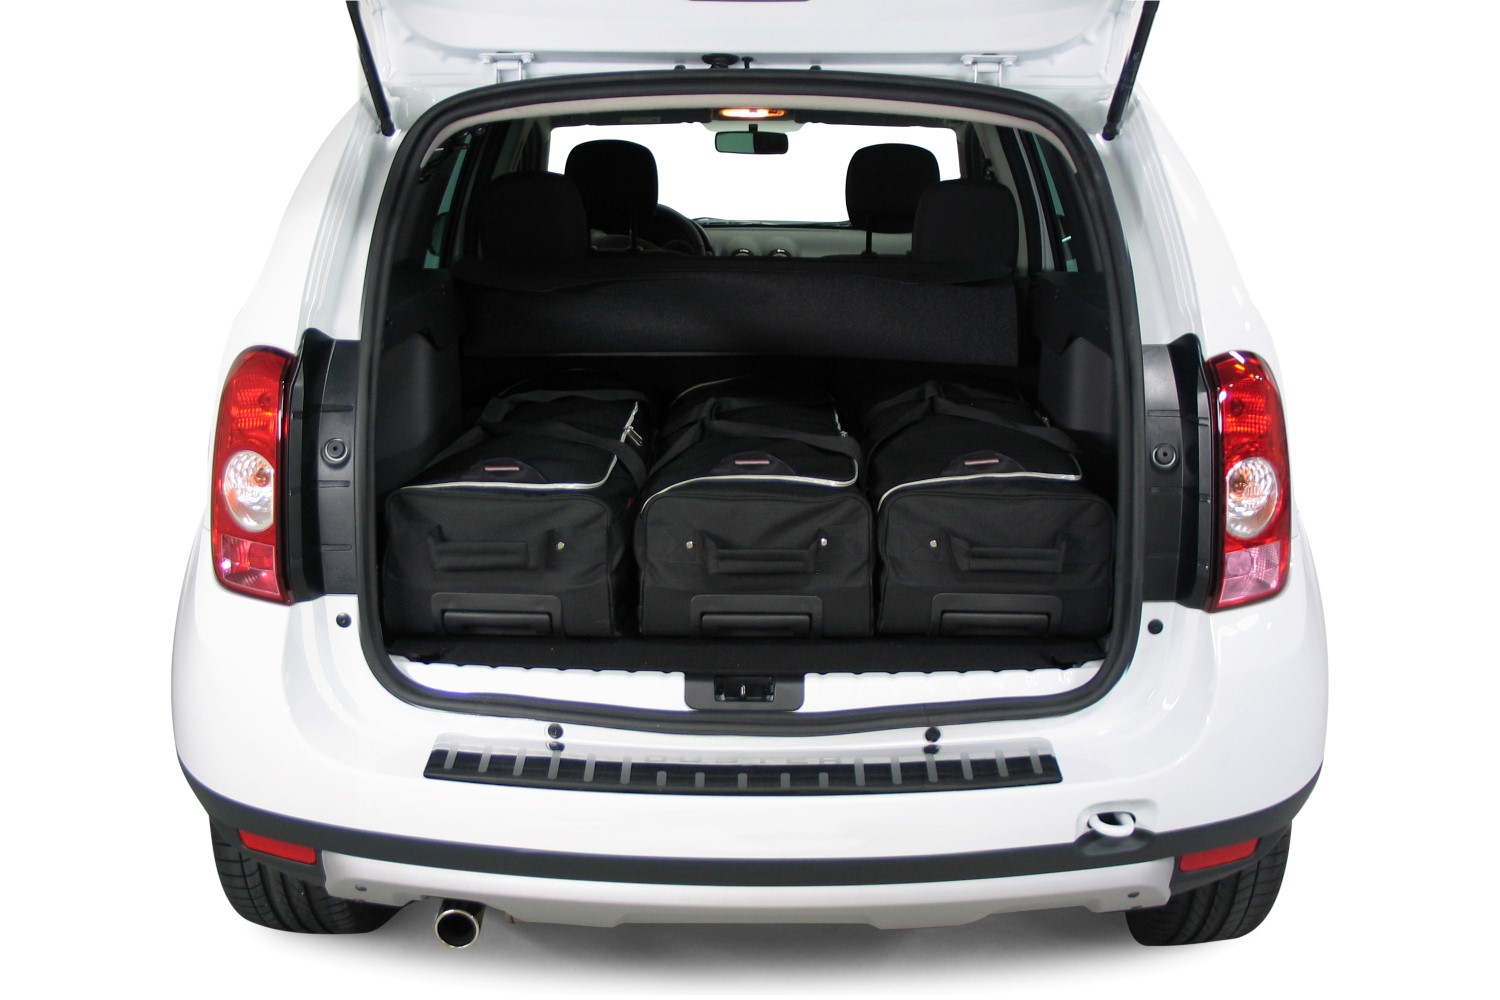 duster dacia duster 1 2010 2017 car bags travel bags. Black Bedroom Furniture Sets. Home Design Ideas